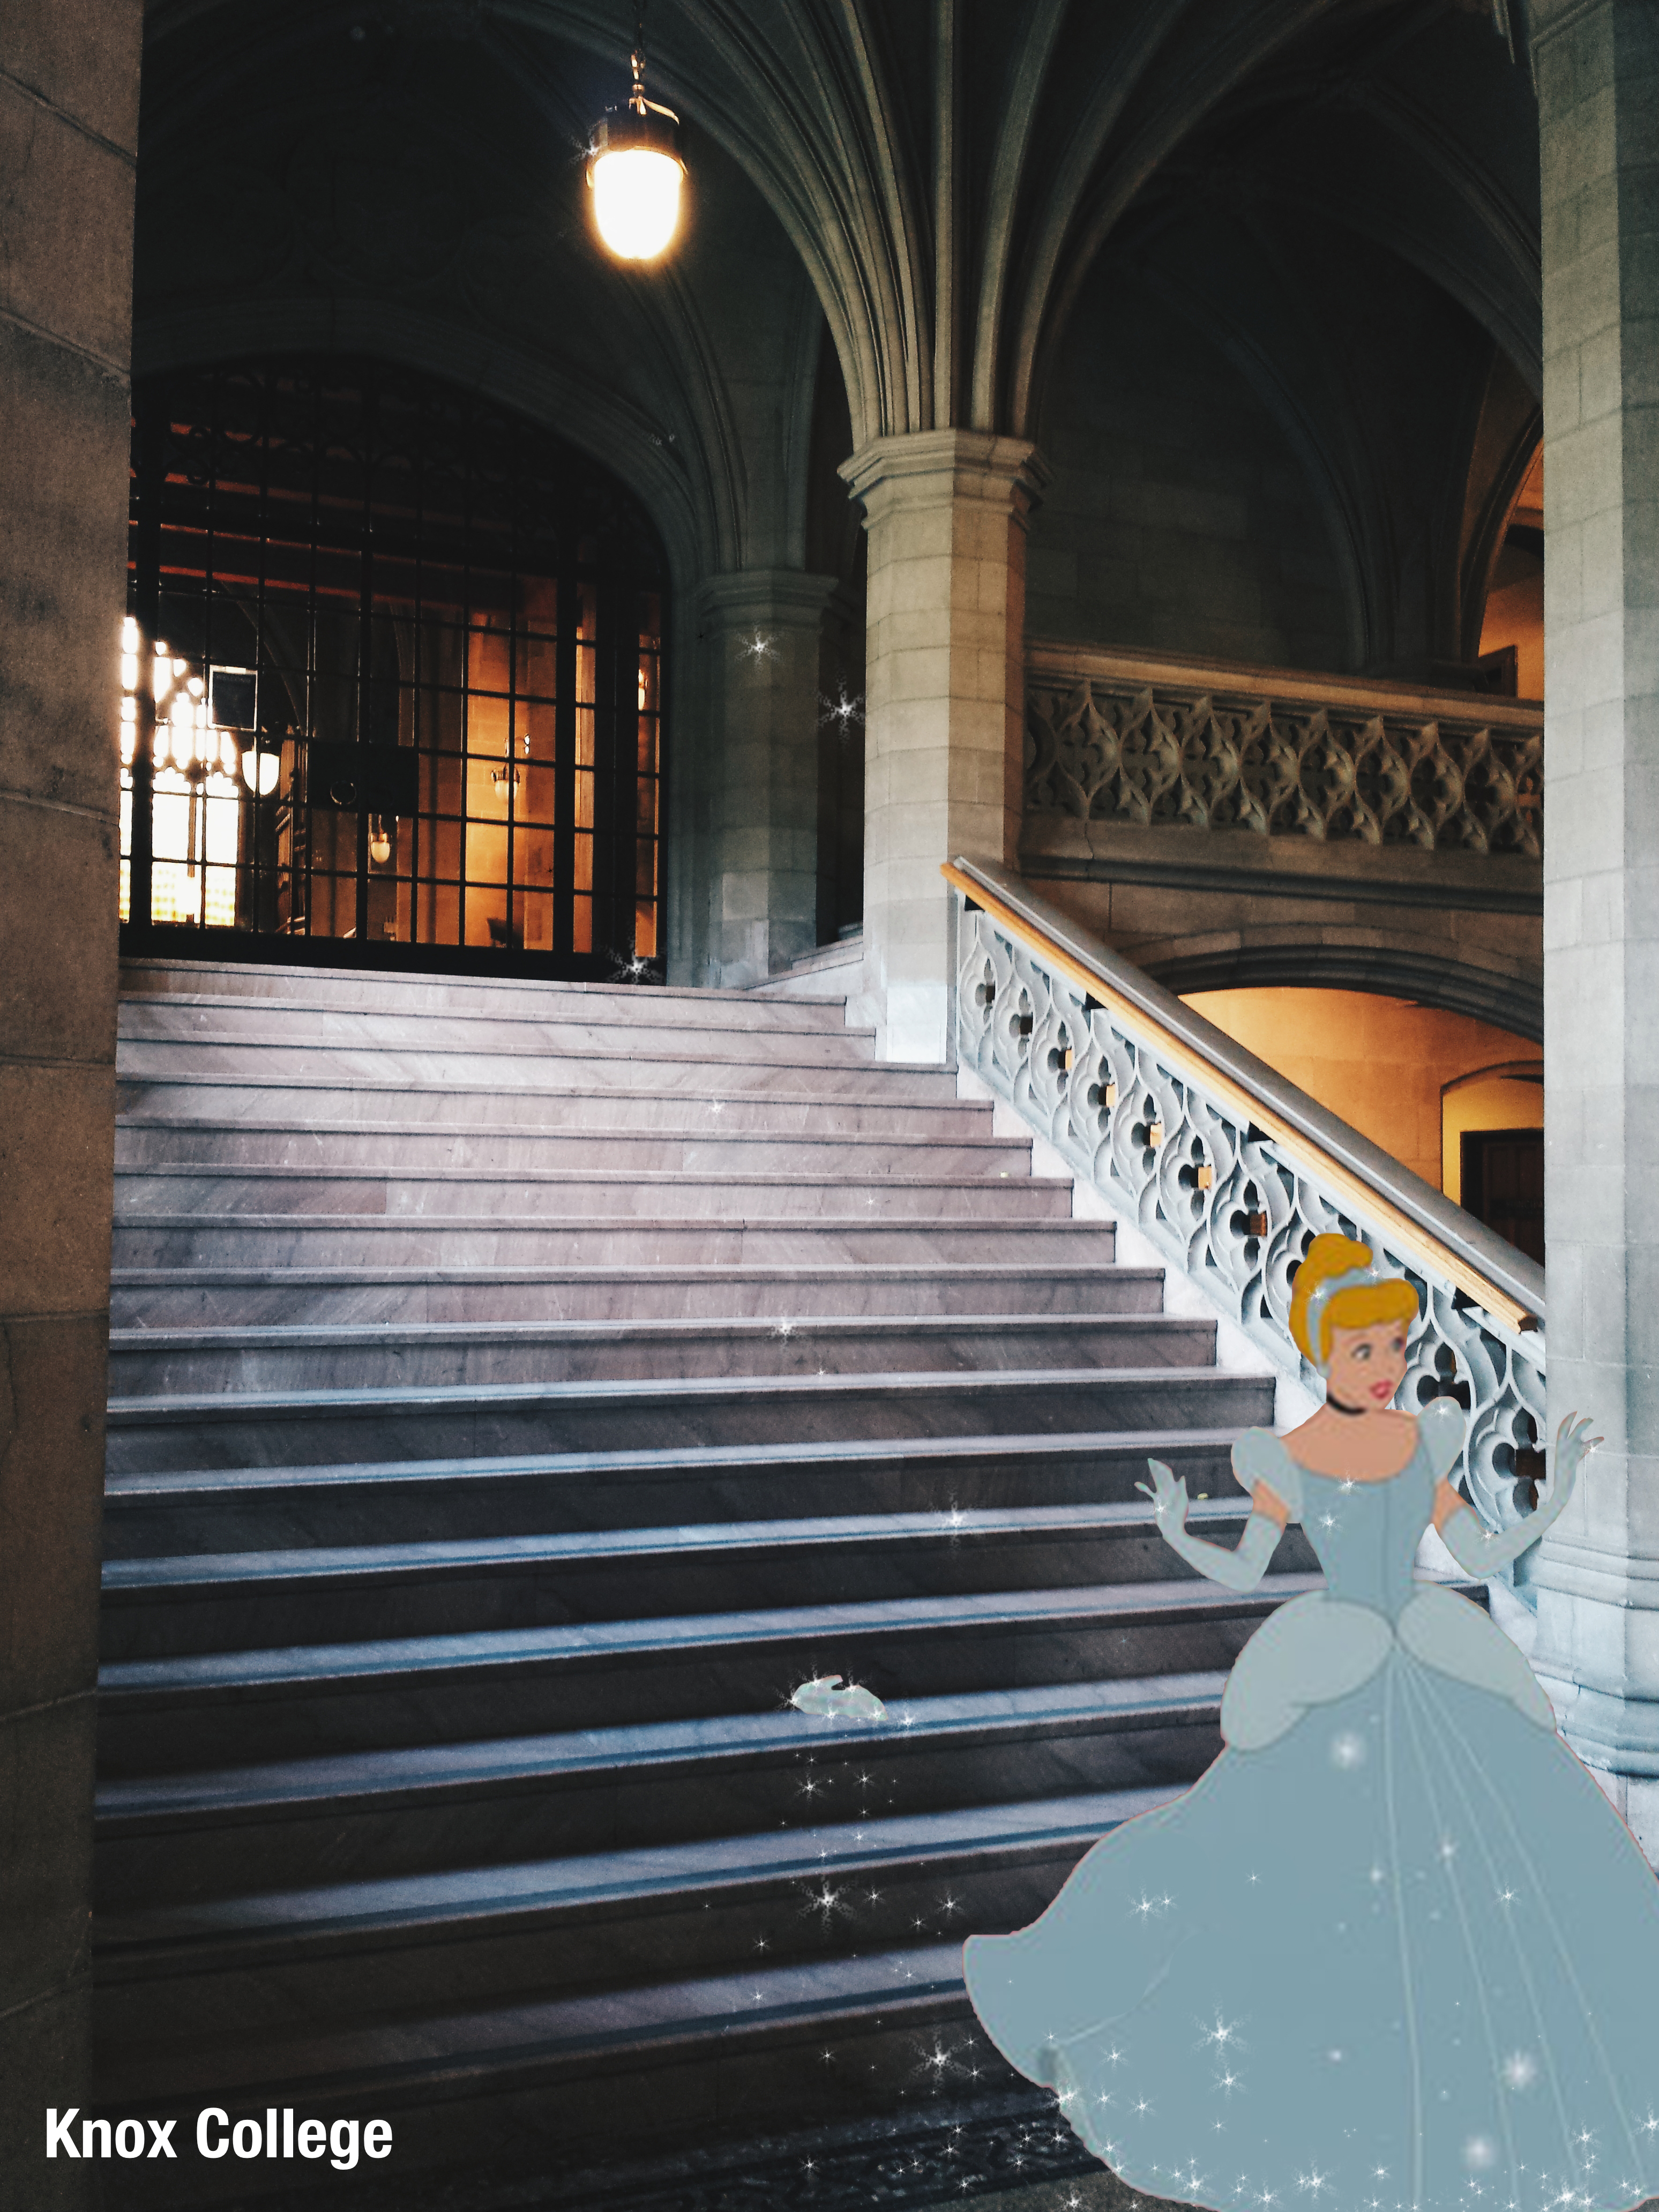 The Knox College staircase. An image of Cinderella was imposed over it, in the movie scene where she leaves the ball and her shoe behind.